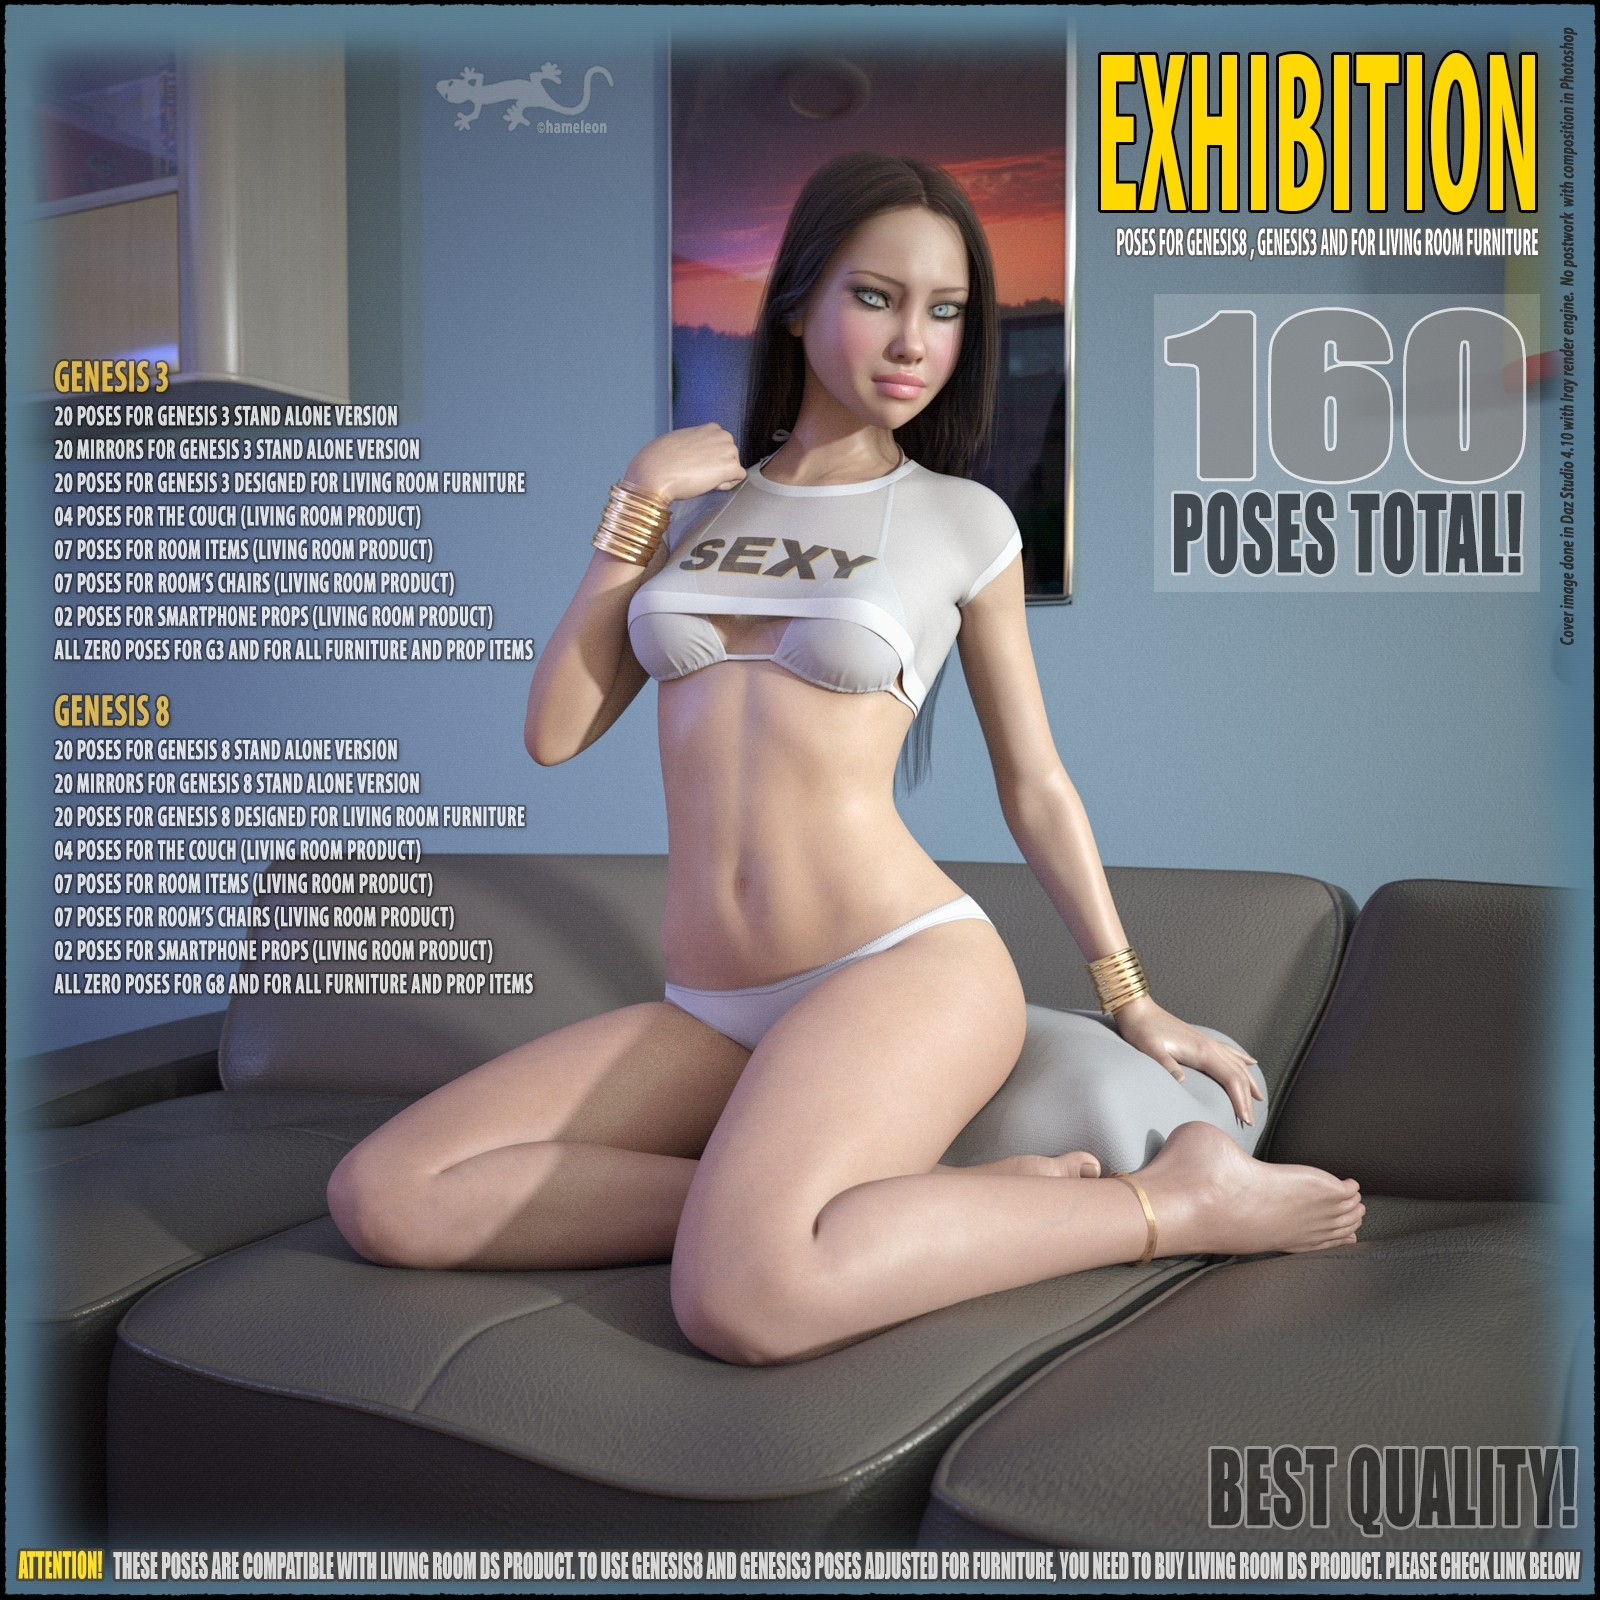 Exhibition - Poses for G8 and G3